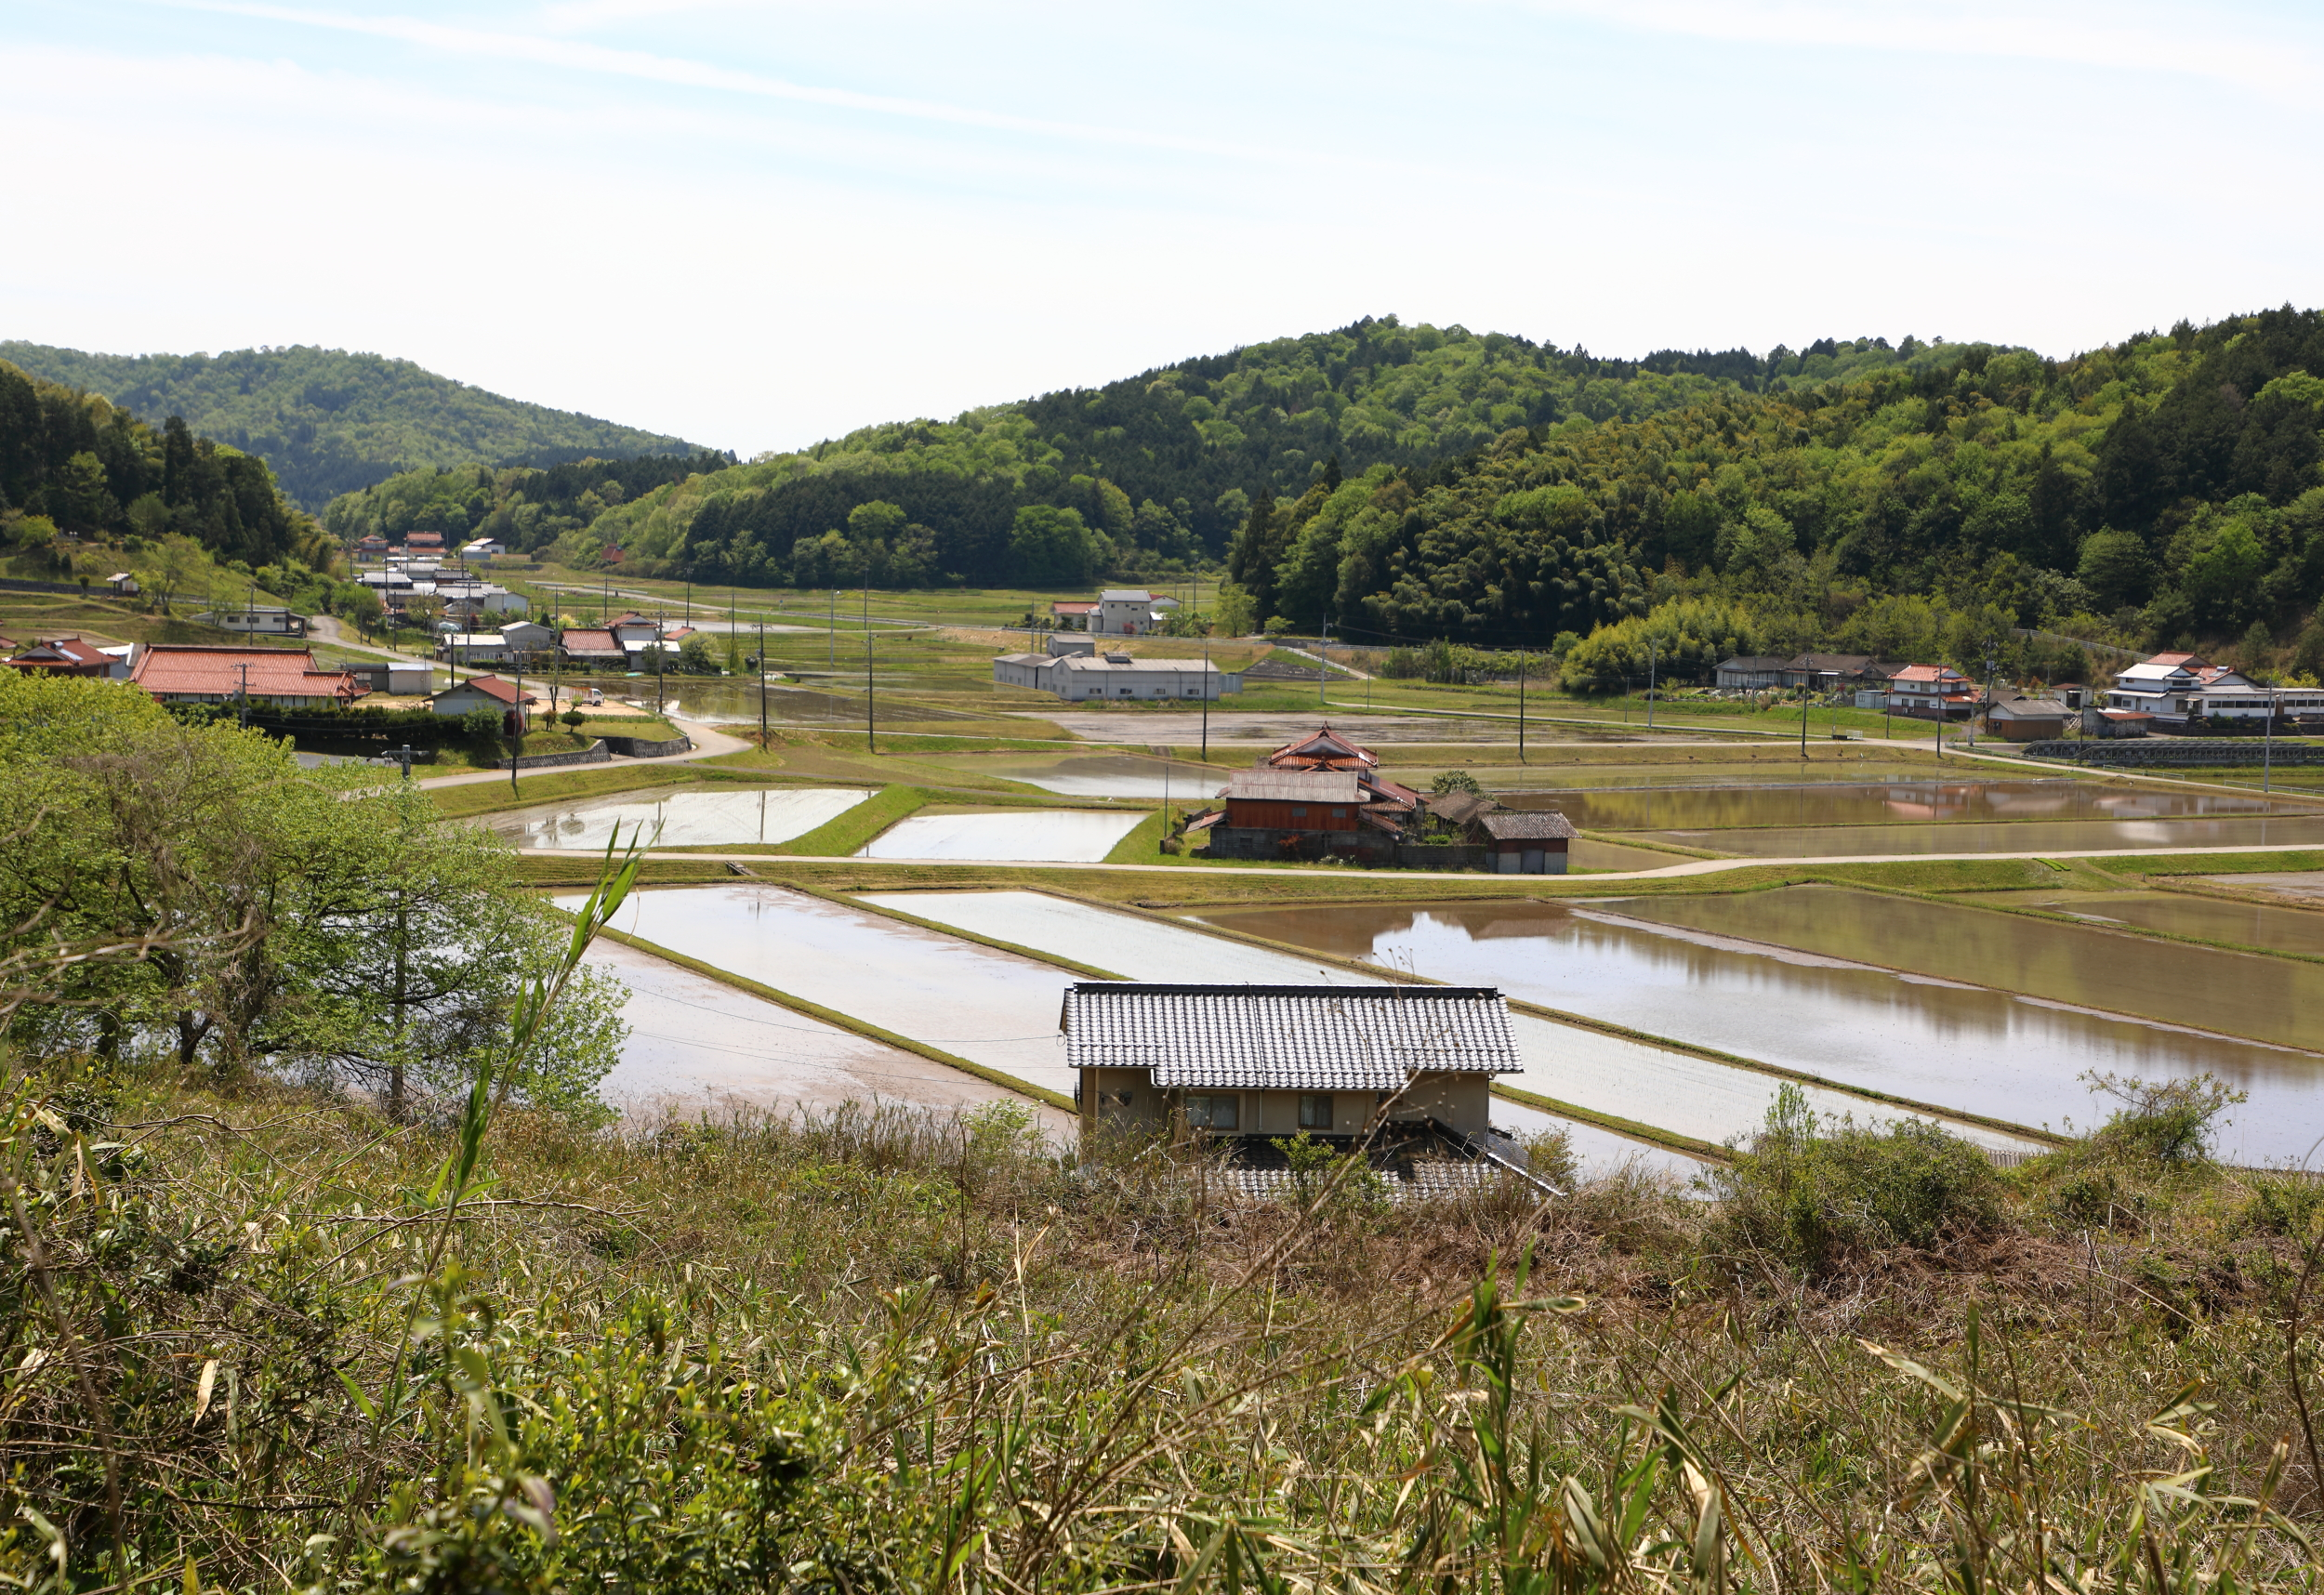 Genki's tea farm is surrounded by other small family farms like these rice farms located at the bottom of his tea field.